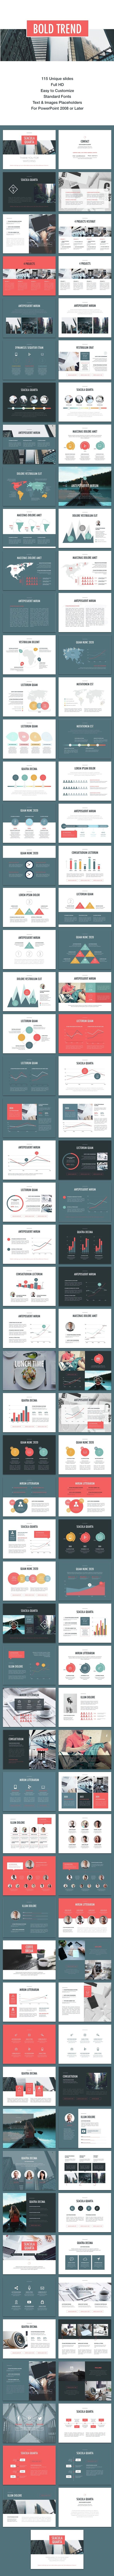 Bold Trend - Business #PowerPoint #Templates Download here: https://graphicriver.net/item/bold-trend/14957632?ref=alena994